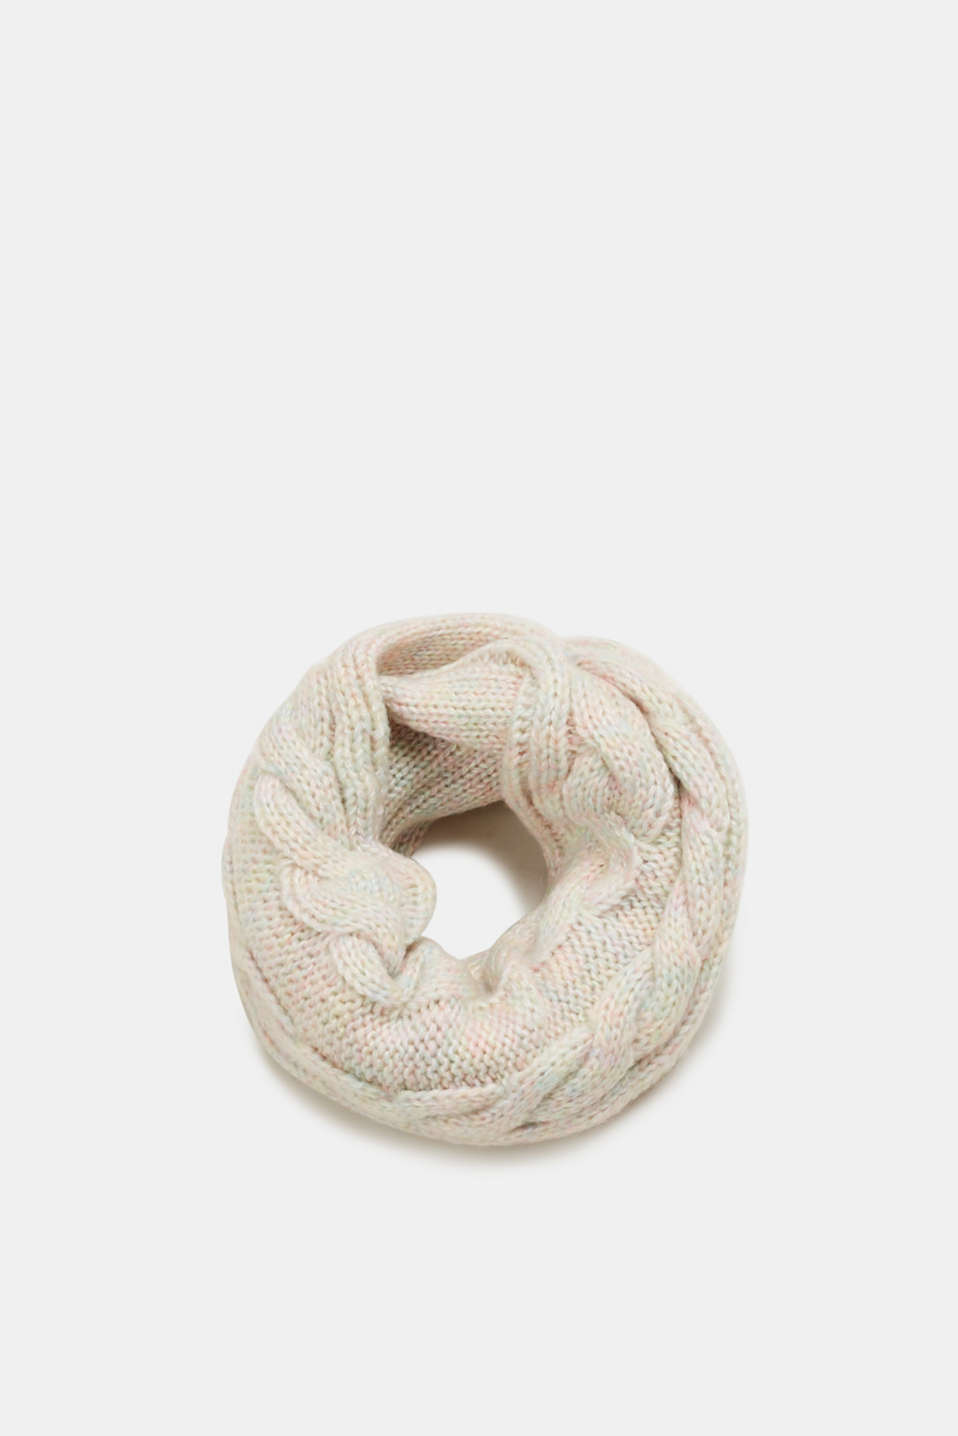 Esprit - Snood in striking cable knit yarn